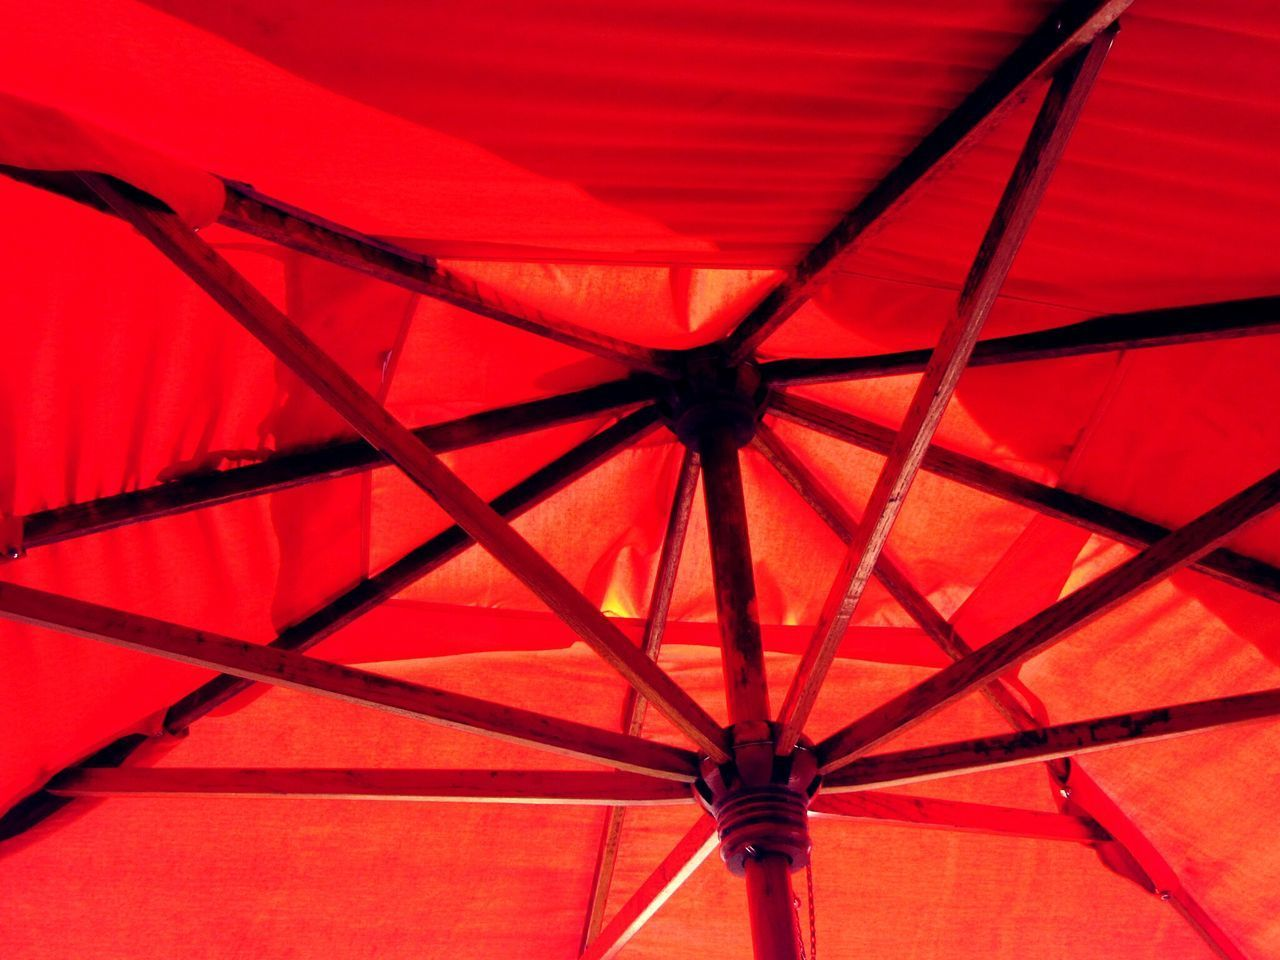 red, low angle view, no people, indoors, day, close-up